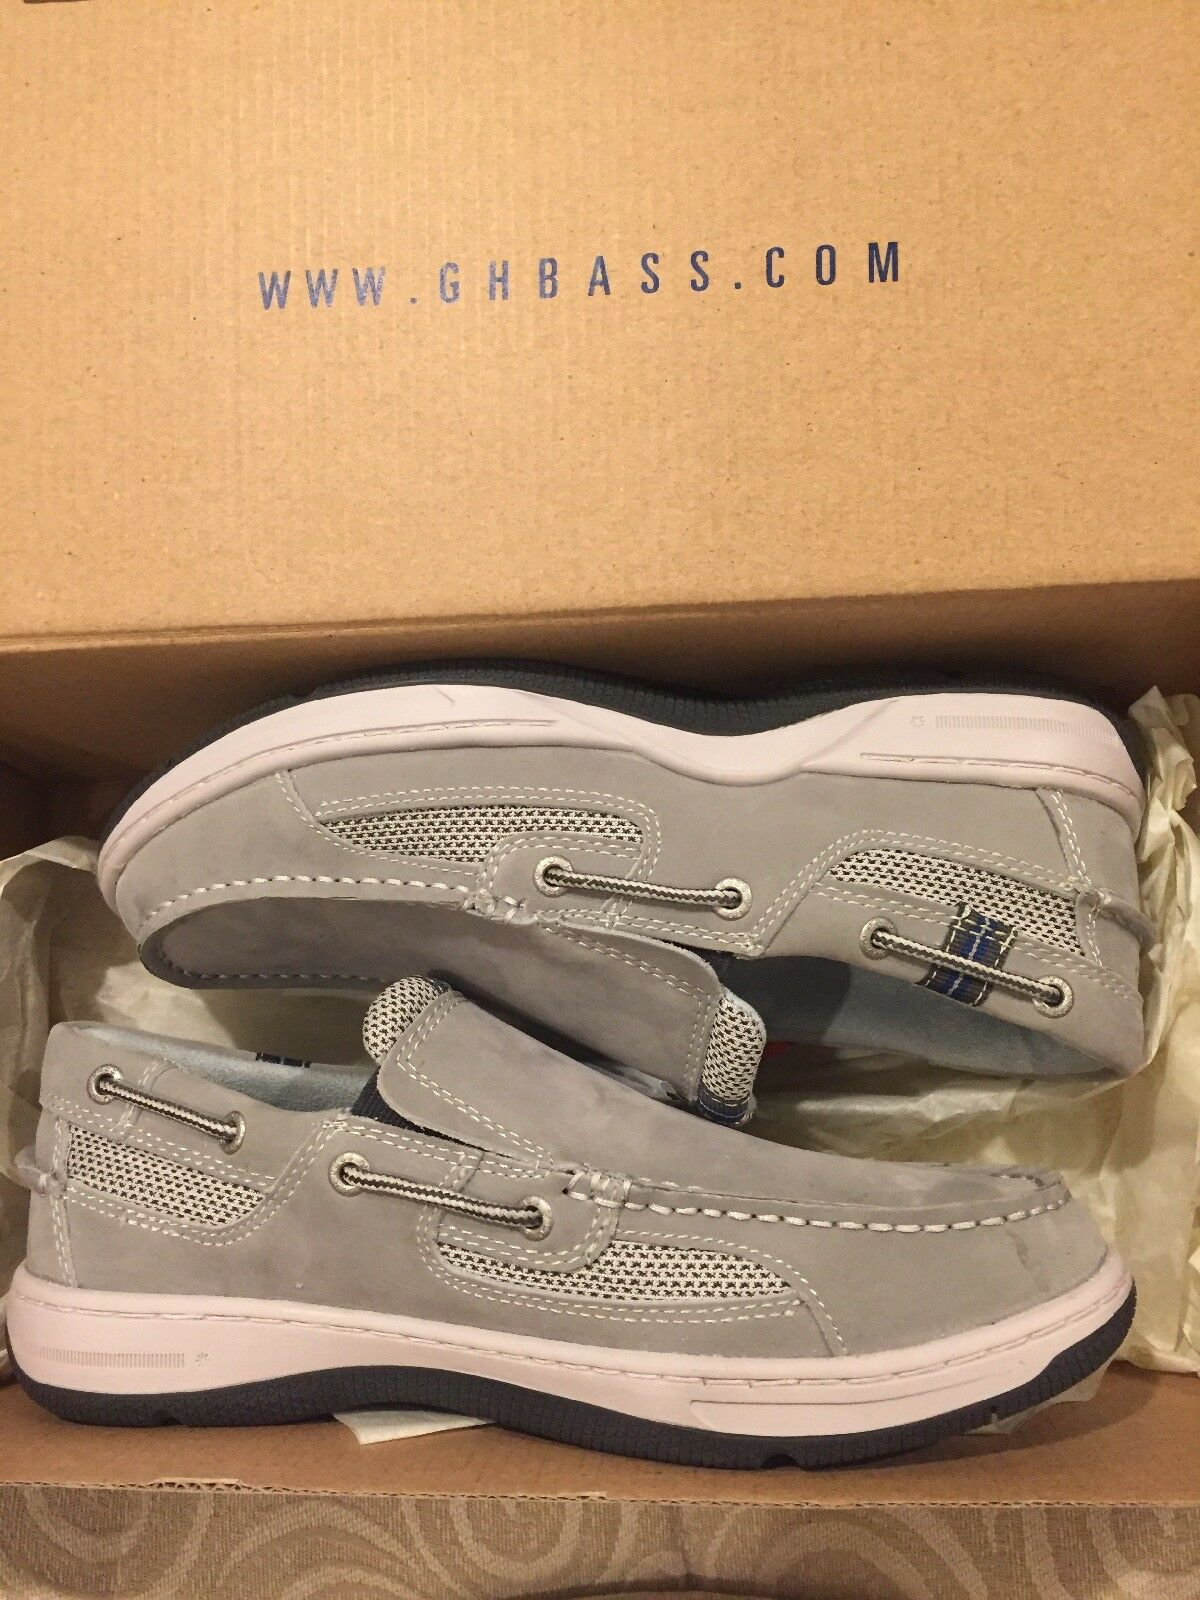 New  Men's BARON BOATER GREY ICE SZ 7.5M  0409-1144